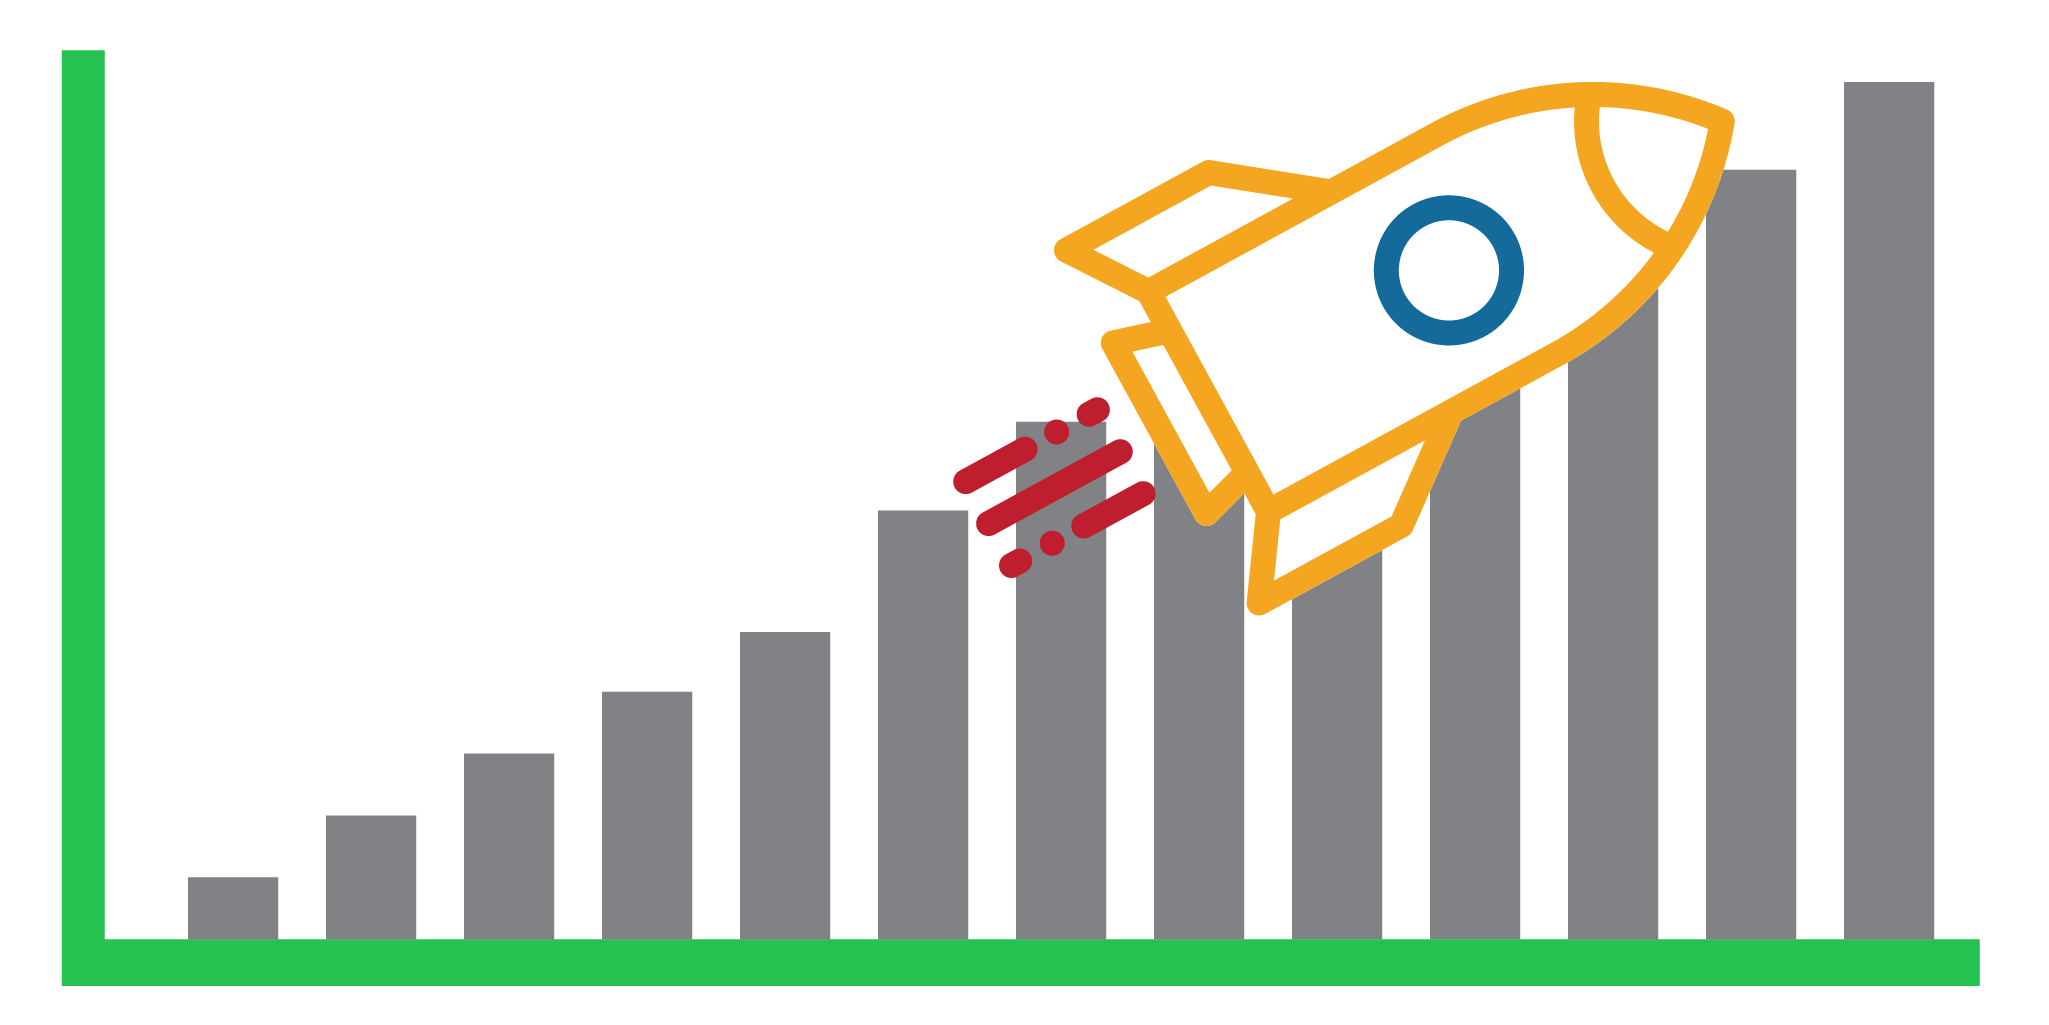 Vision clipart visibility. Pagerduty surpasses growth goals